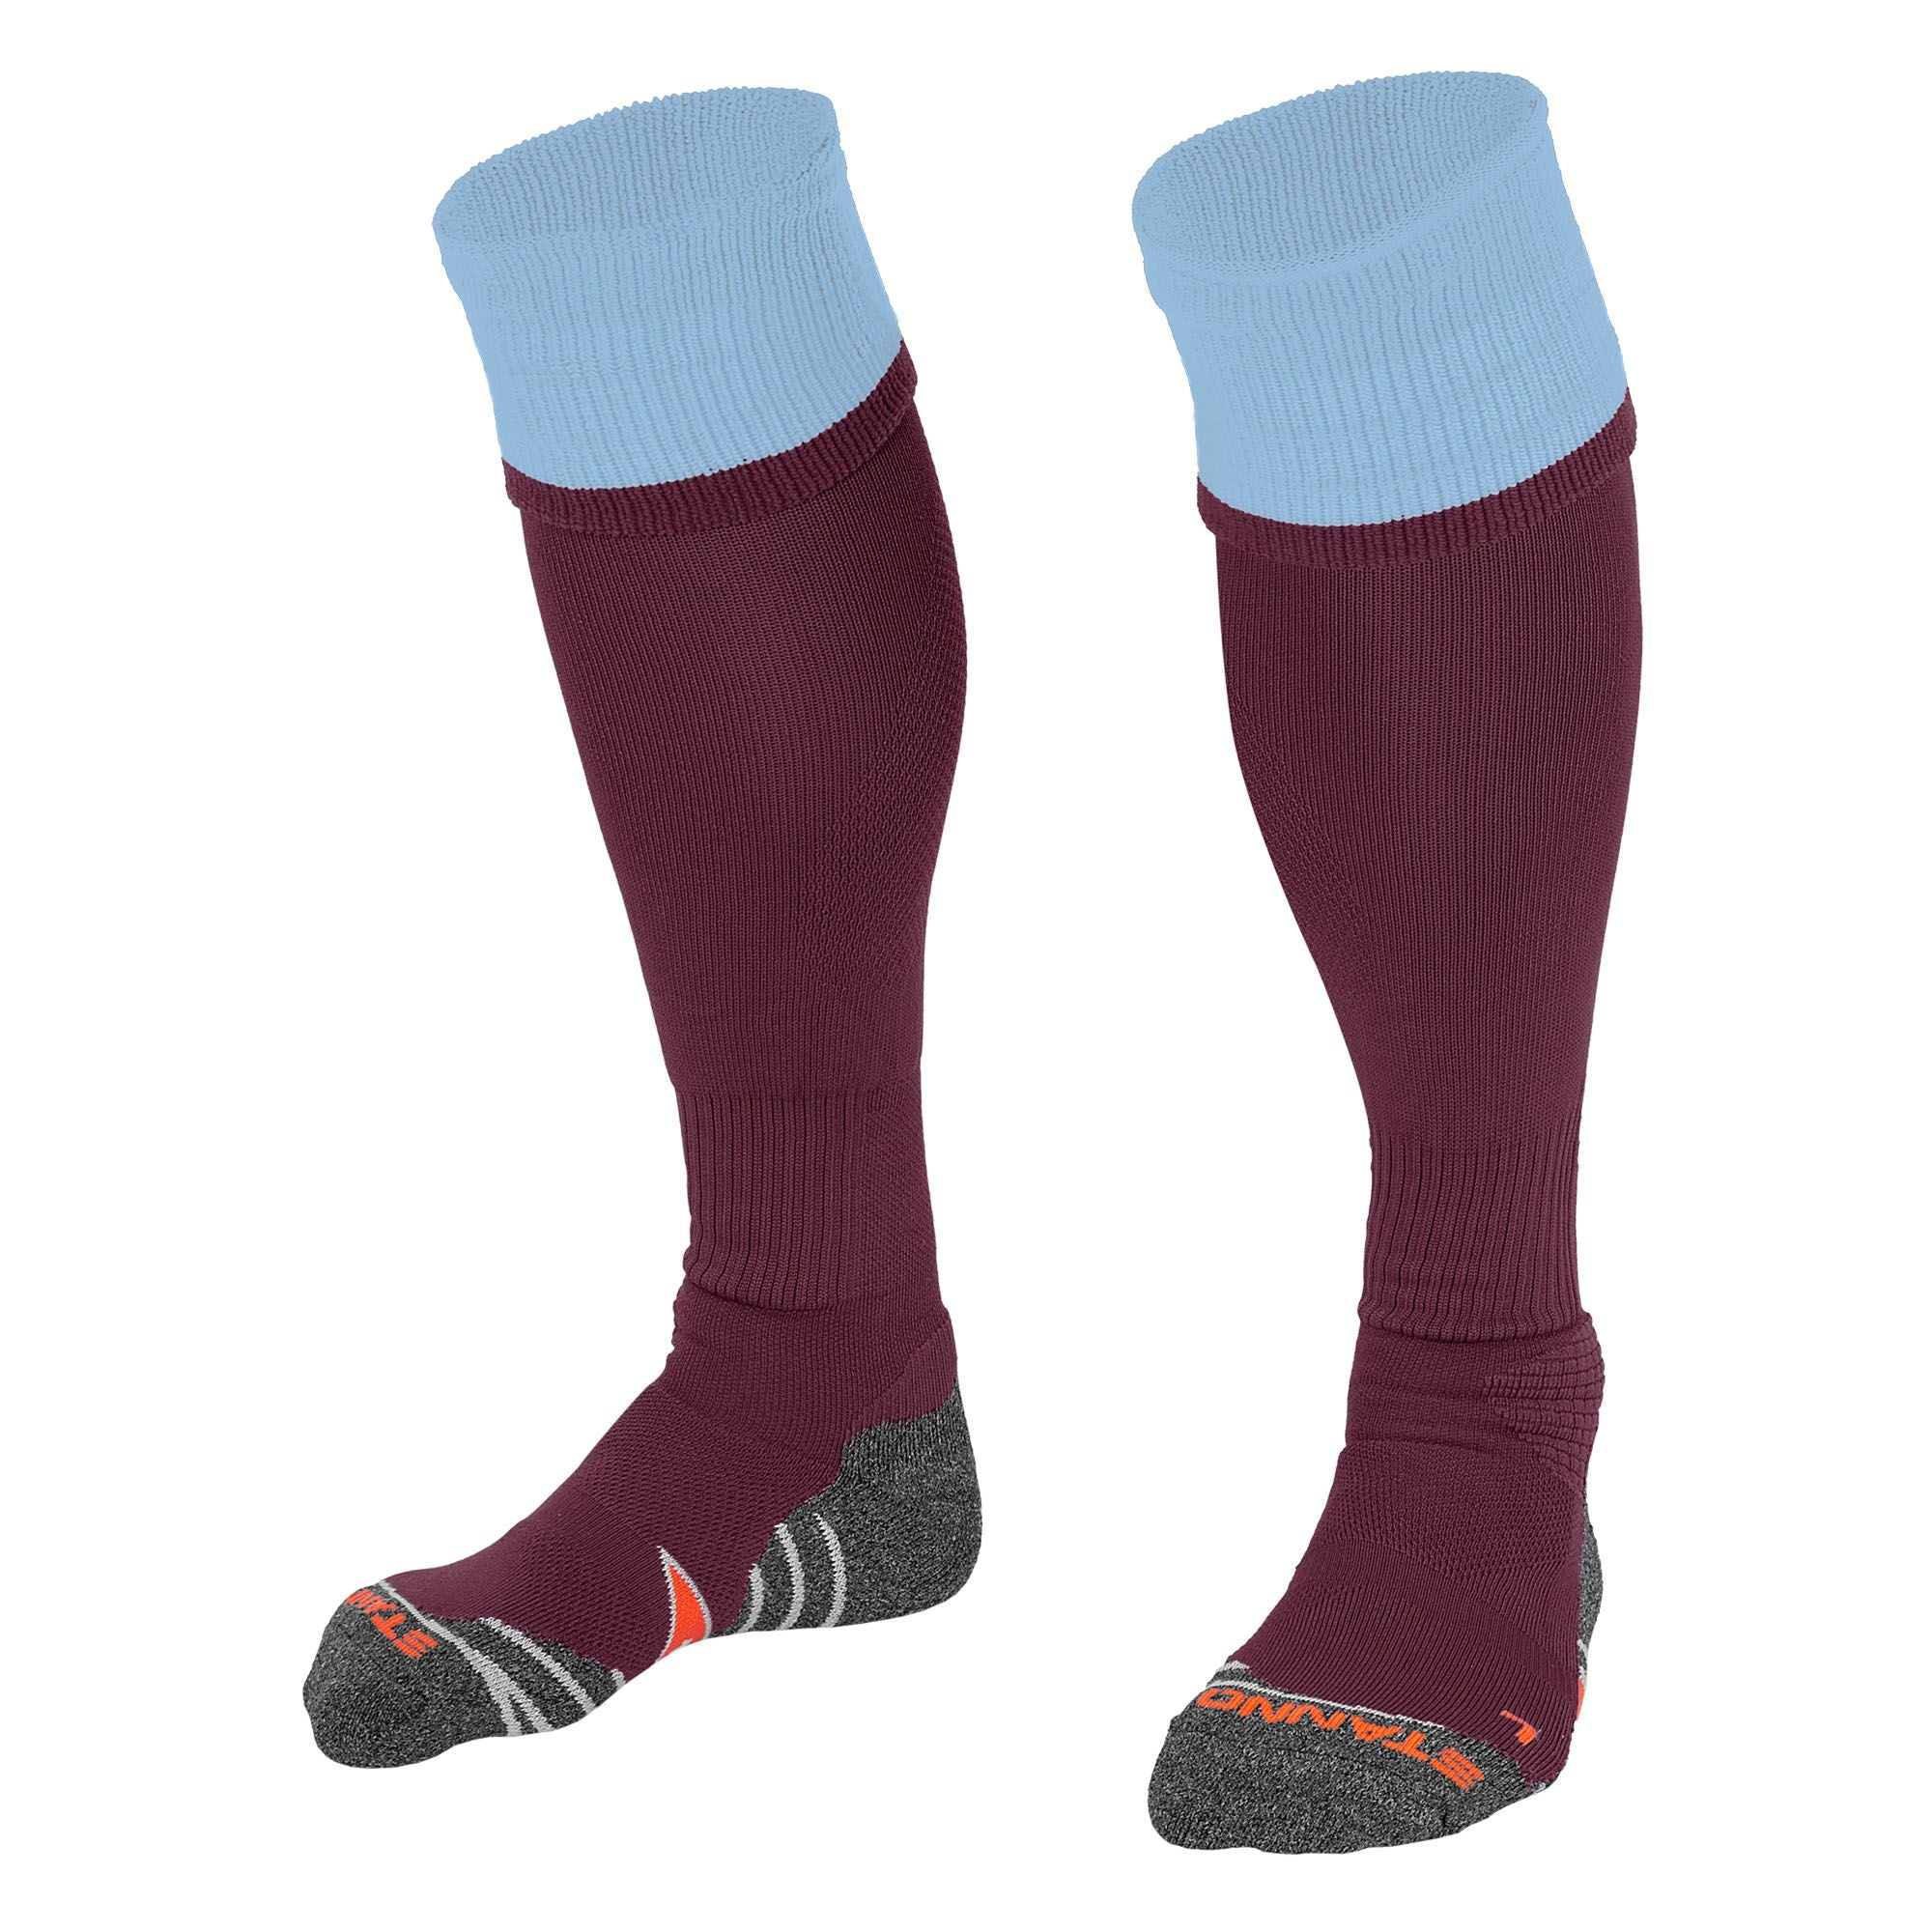 Stanno Combi Sock in maroon with sky blue contrast tops